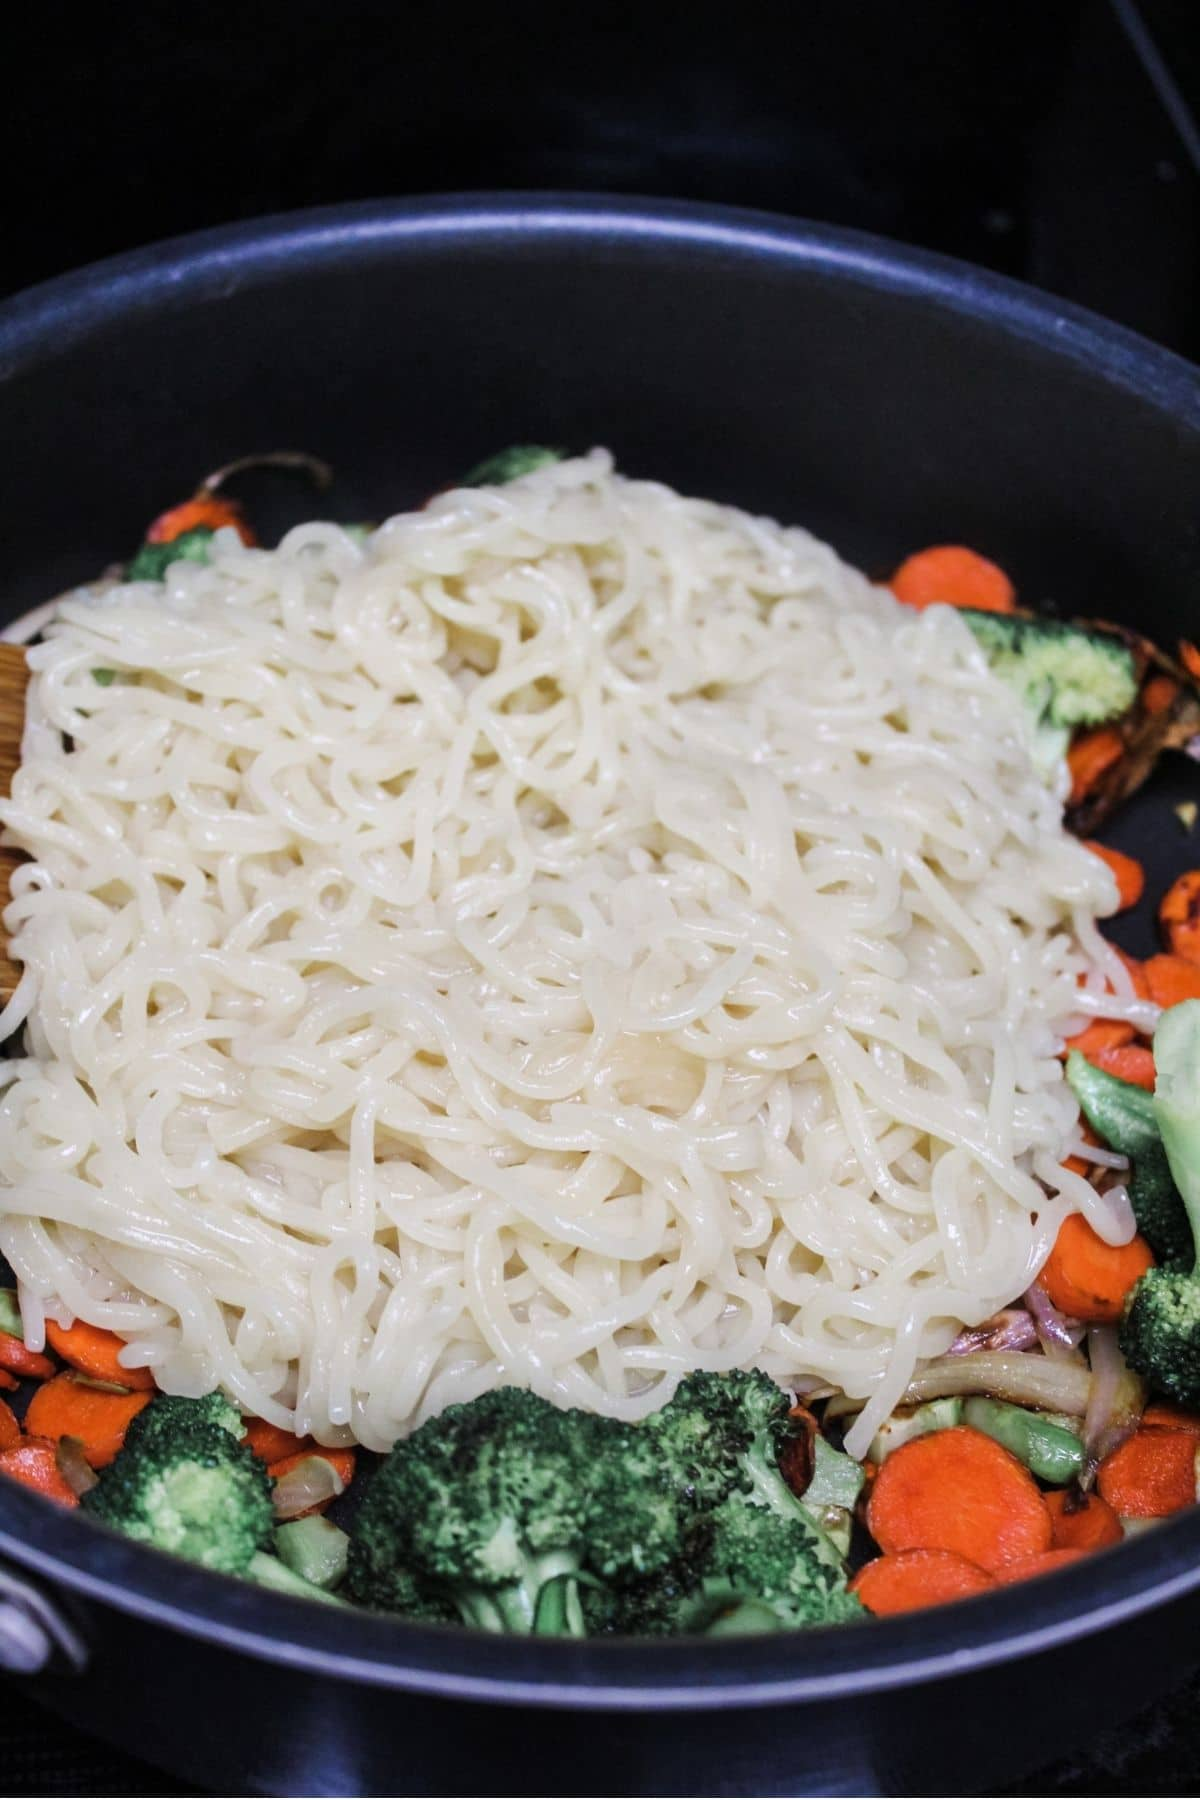 combining cooked ramen noodles with broccoli, carrots, and shallots in a big pan